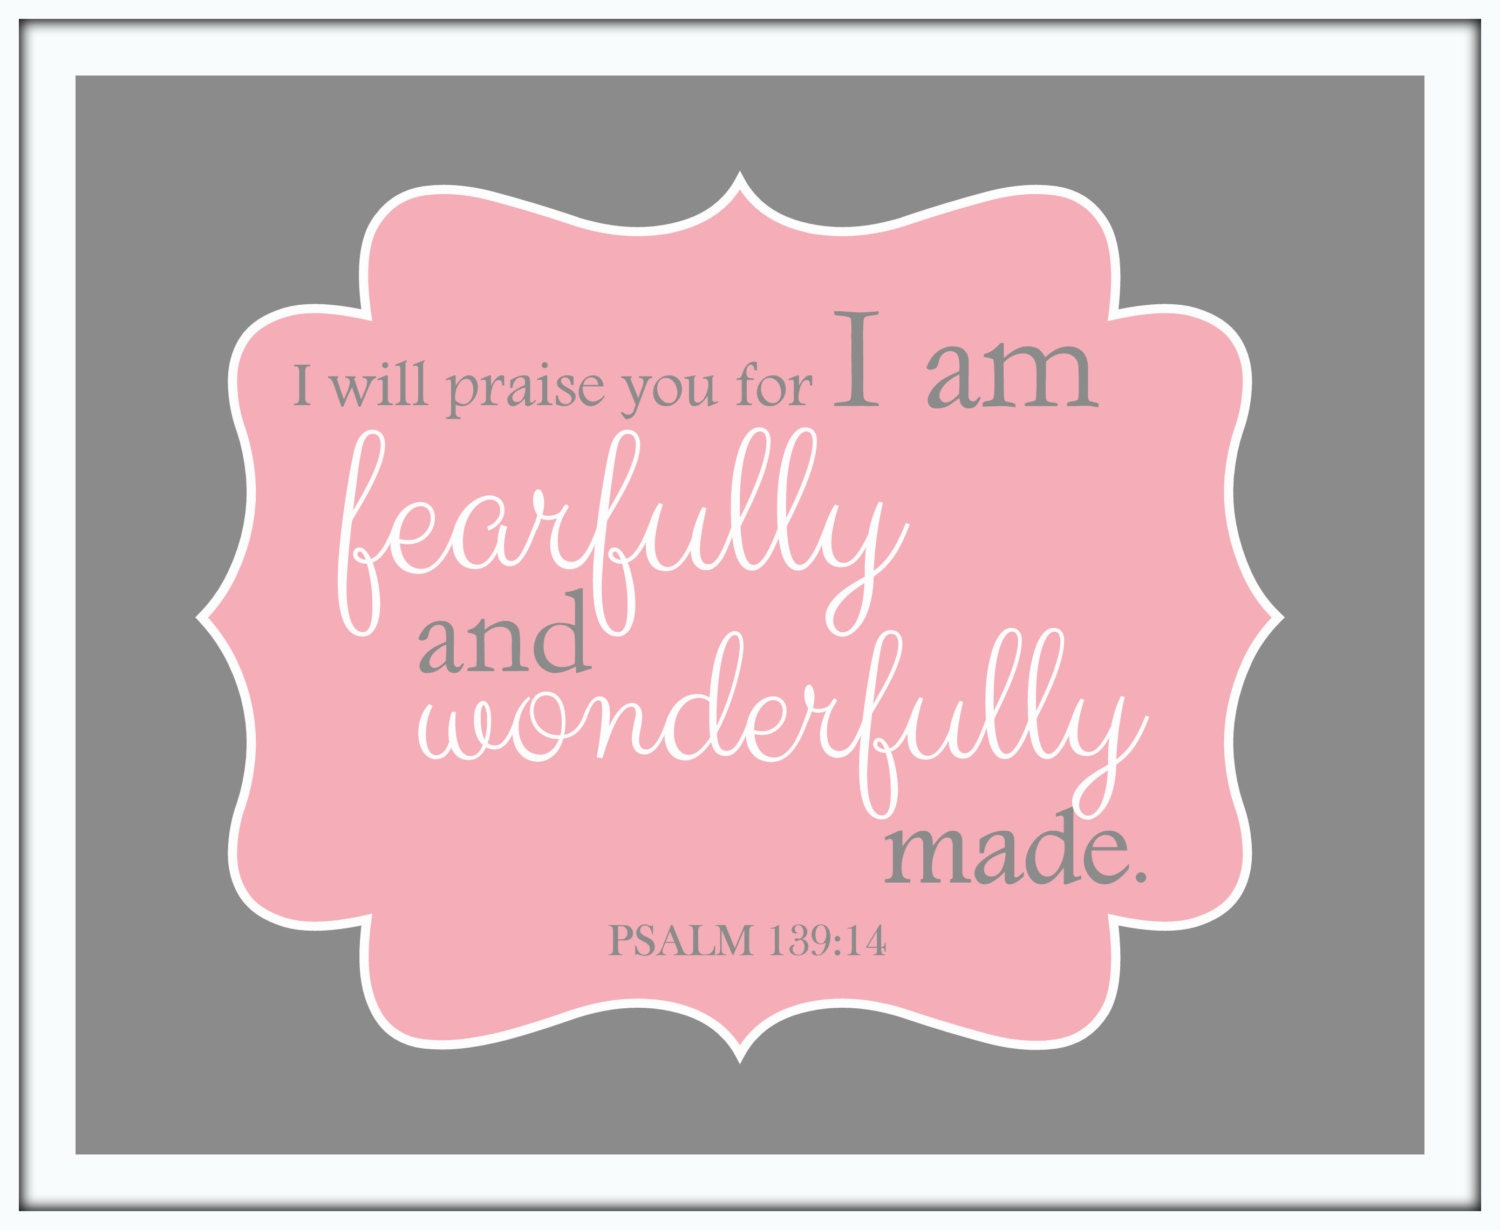 I Am Fearfully And Wonderfully Made Psalm 13914 Christian